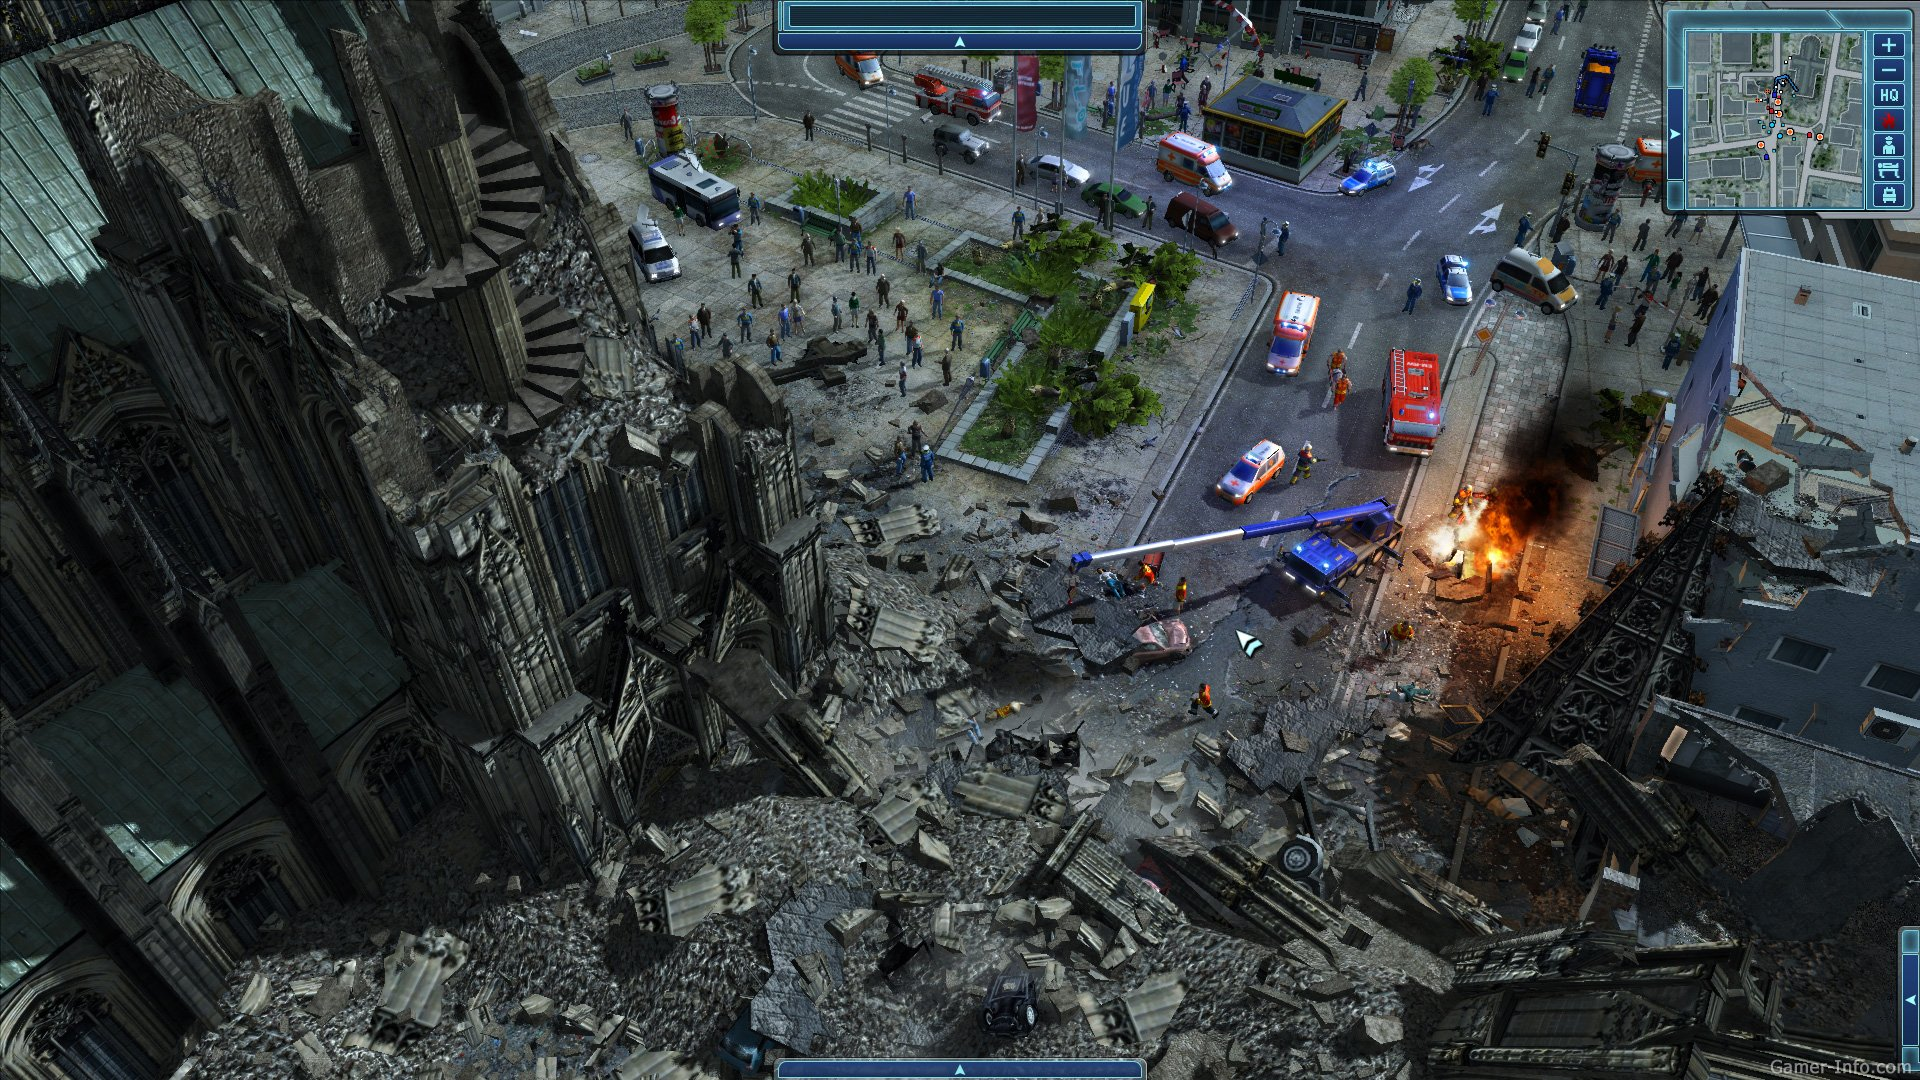 Emergency 2012: The Quest for Peace - дата выхода, отзывы